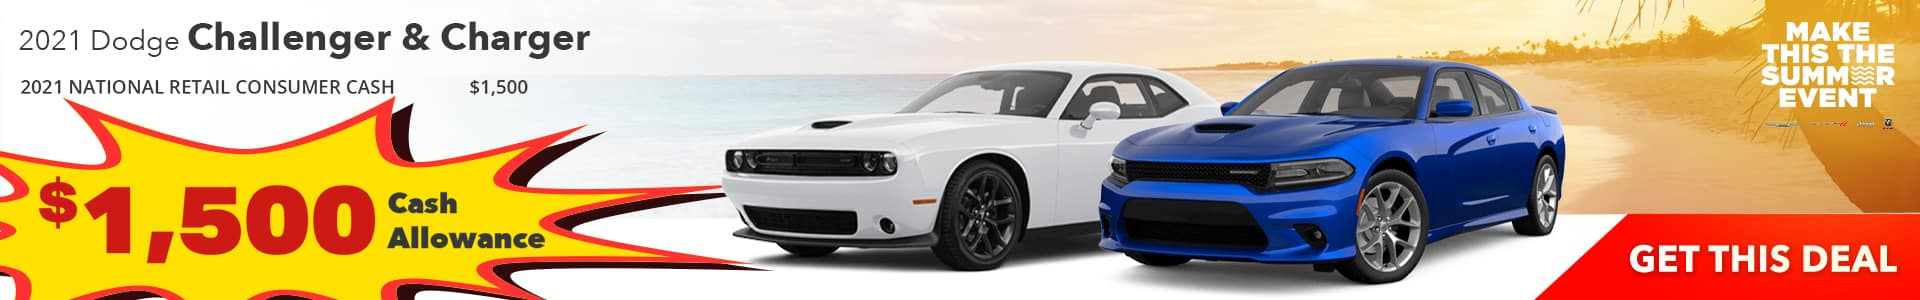 SRP-Challenger and Charger